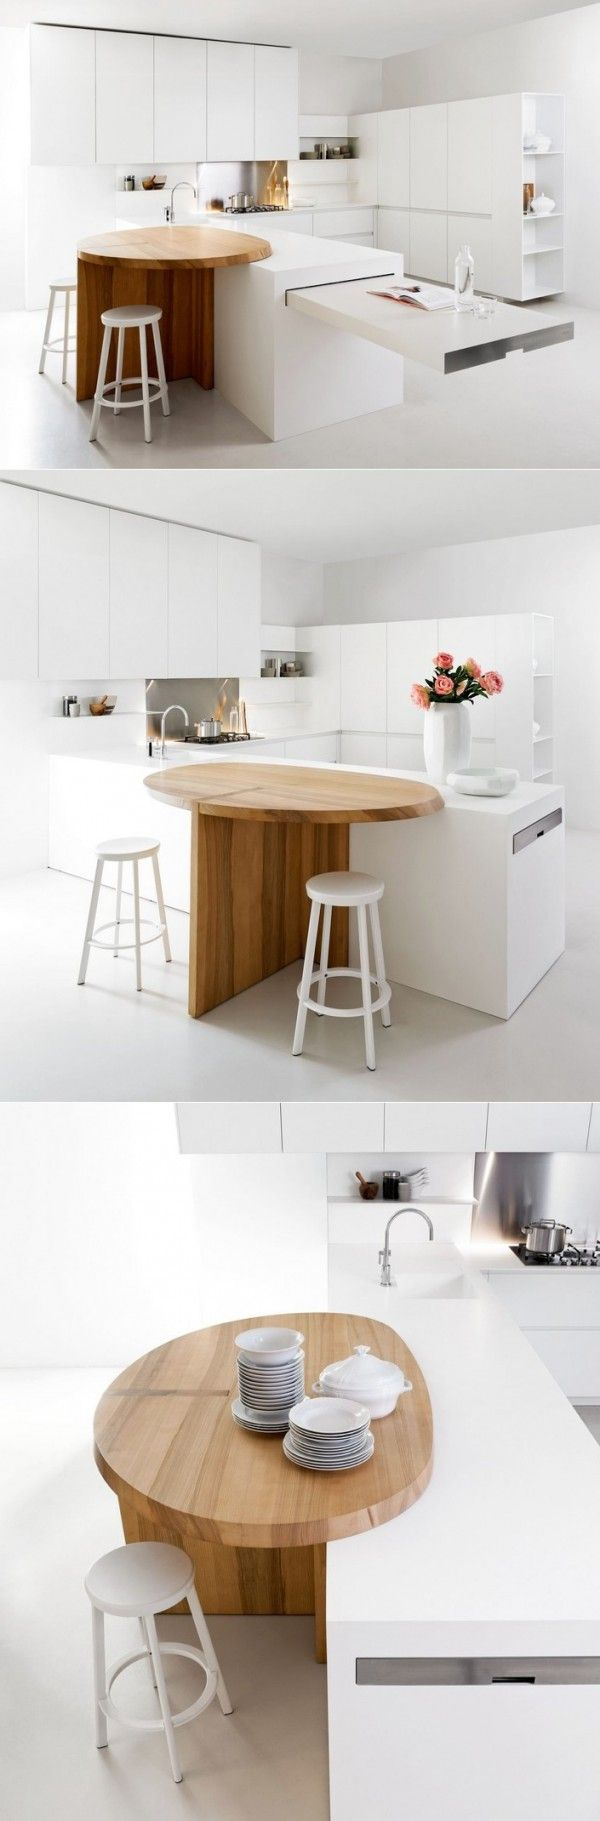 les 25 meilleures id es de la cat gorie plan de travail quartz sur pinterest quartz blanc. Black Bedroom Furniture Sets. Home Design Ideas